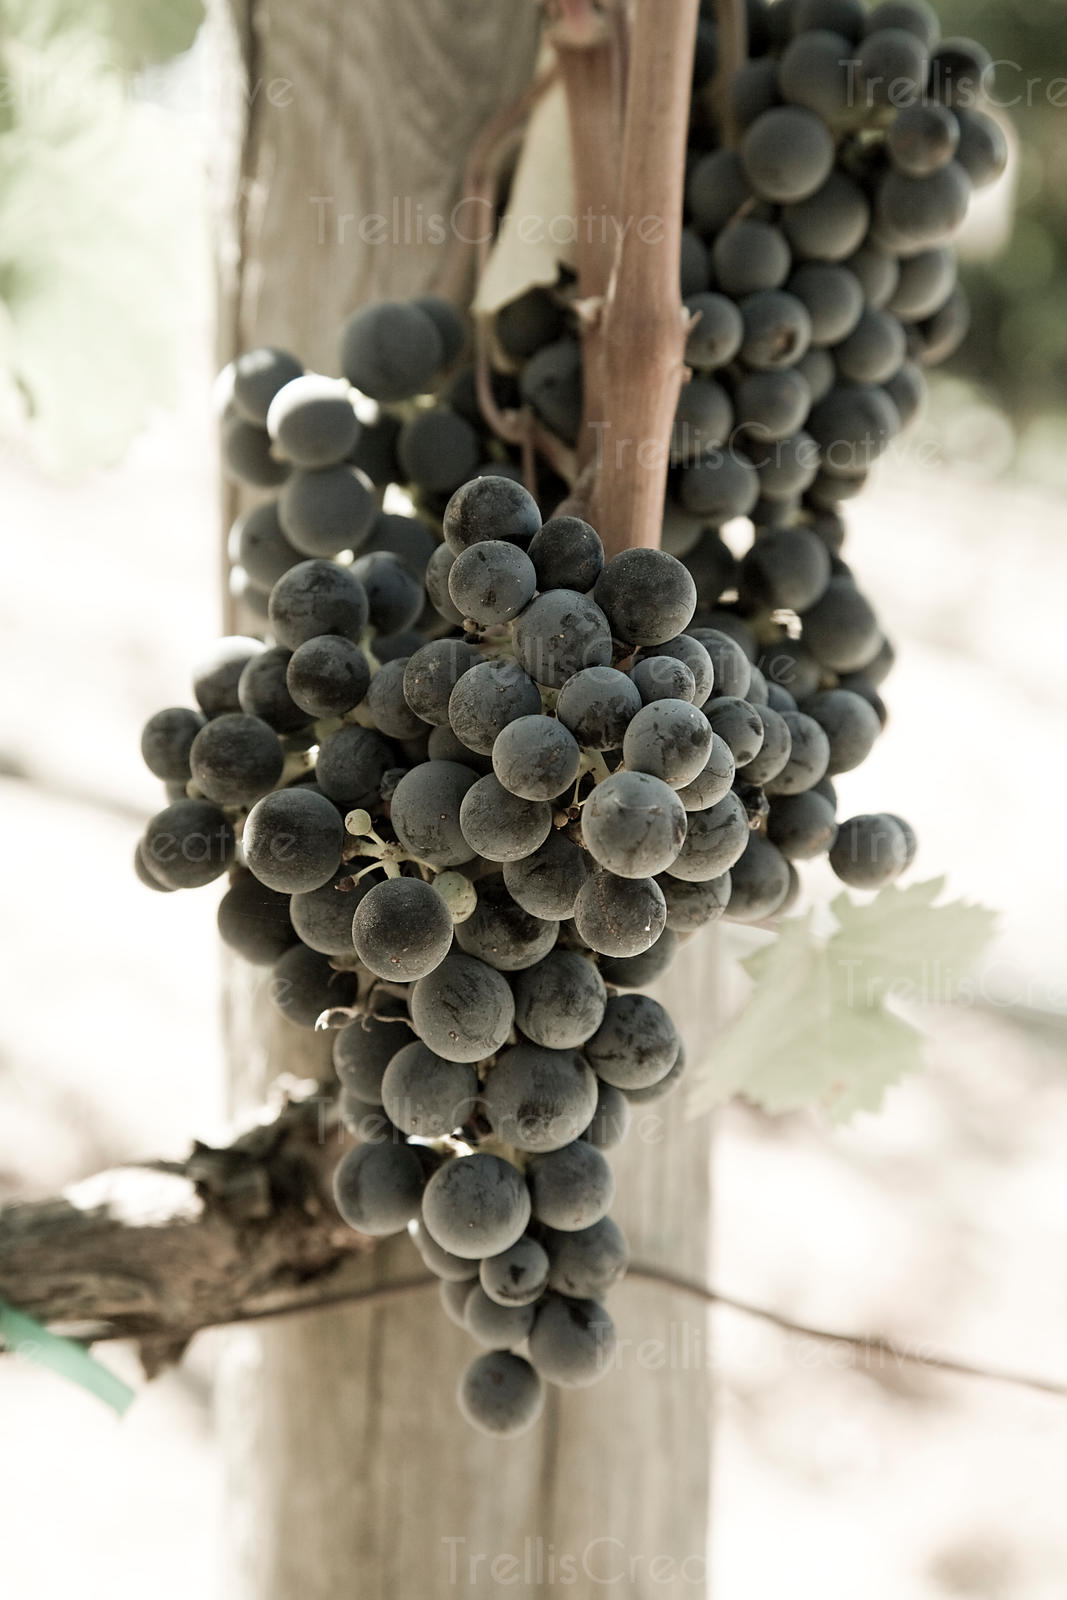 Clusters of ripe petit verdot grapes hanging on the vine